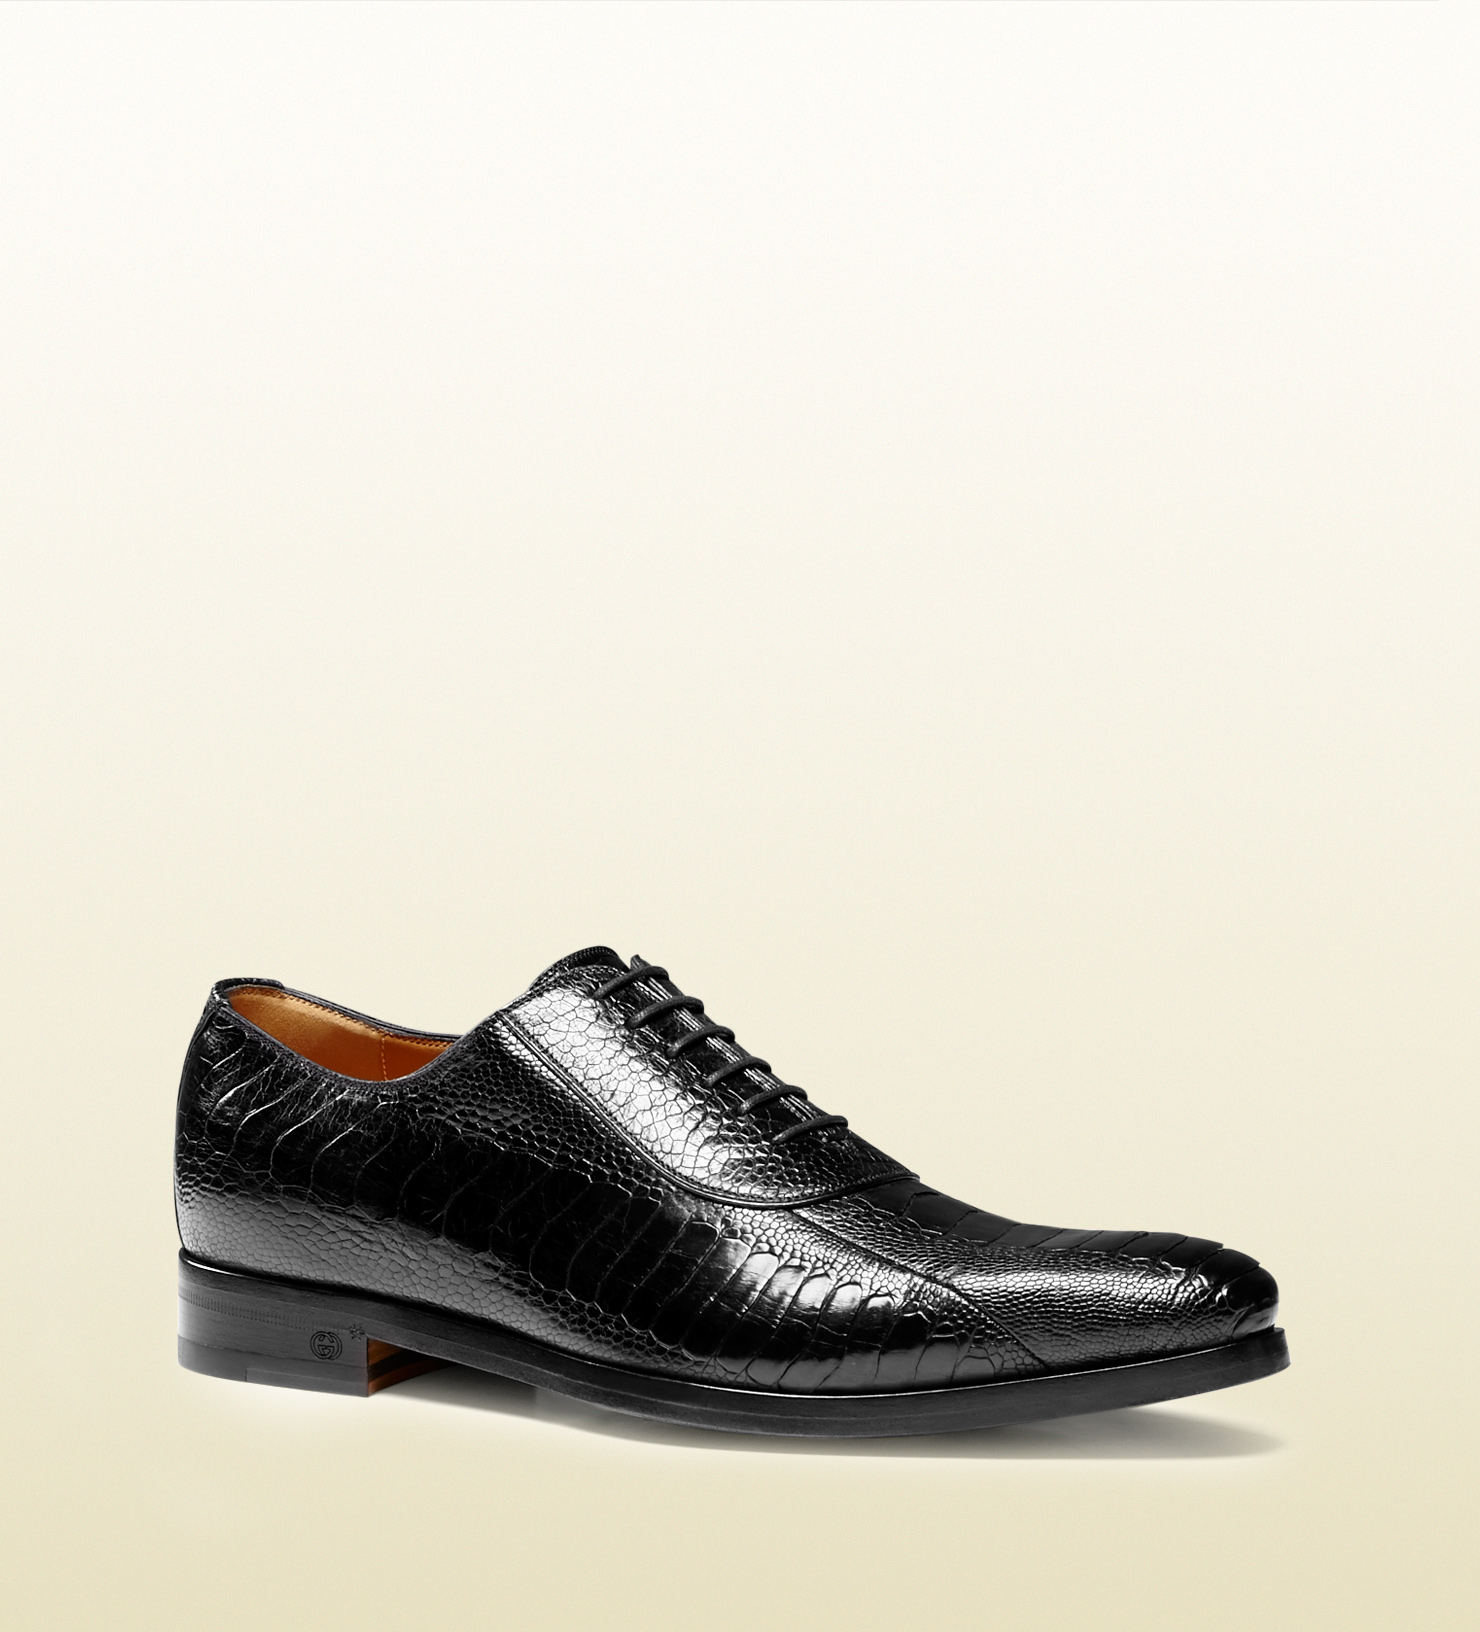 Gucci Ostrich Claw Lace-up Shoe in Black for Men